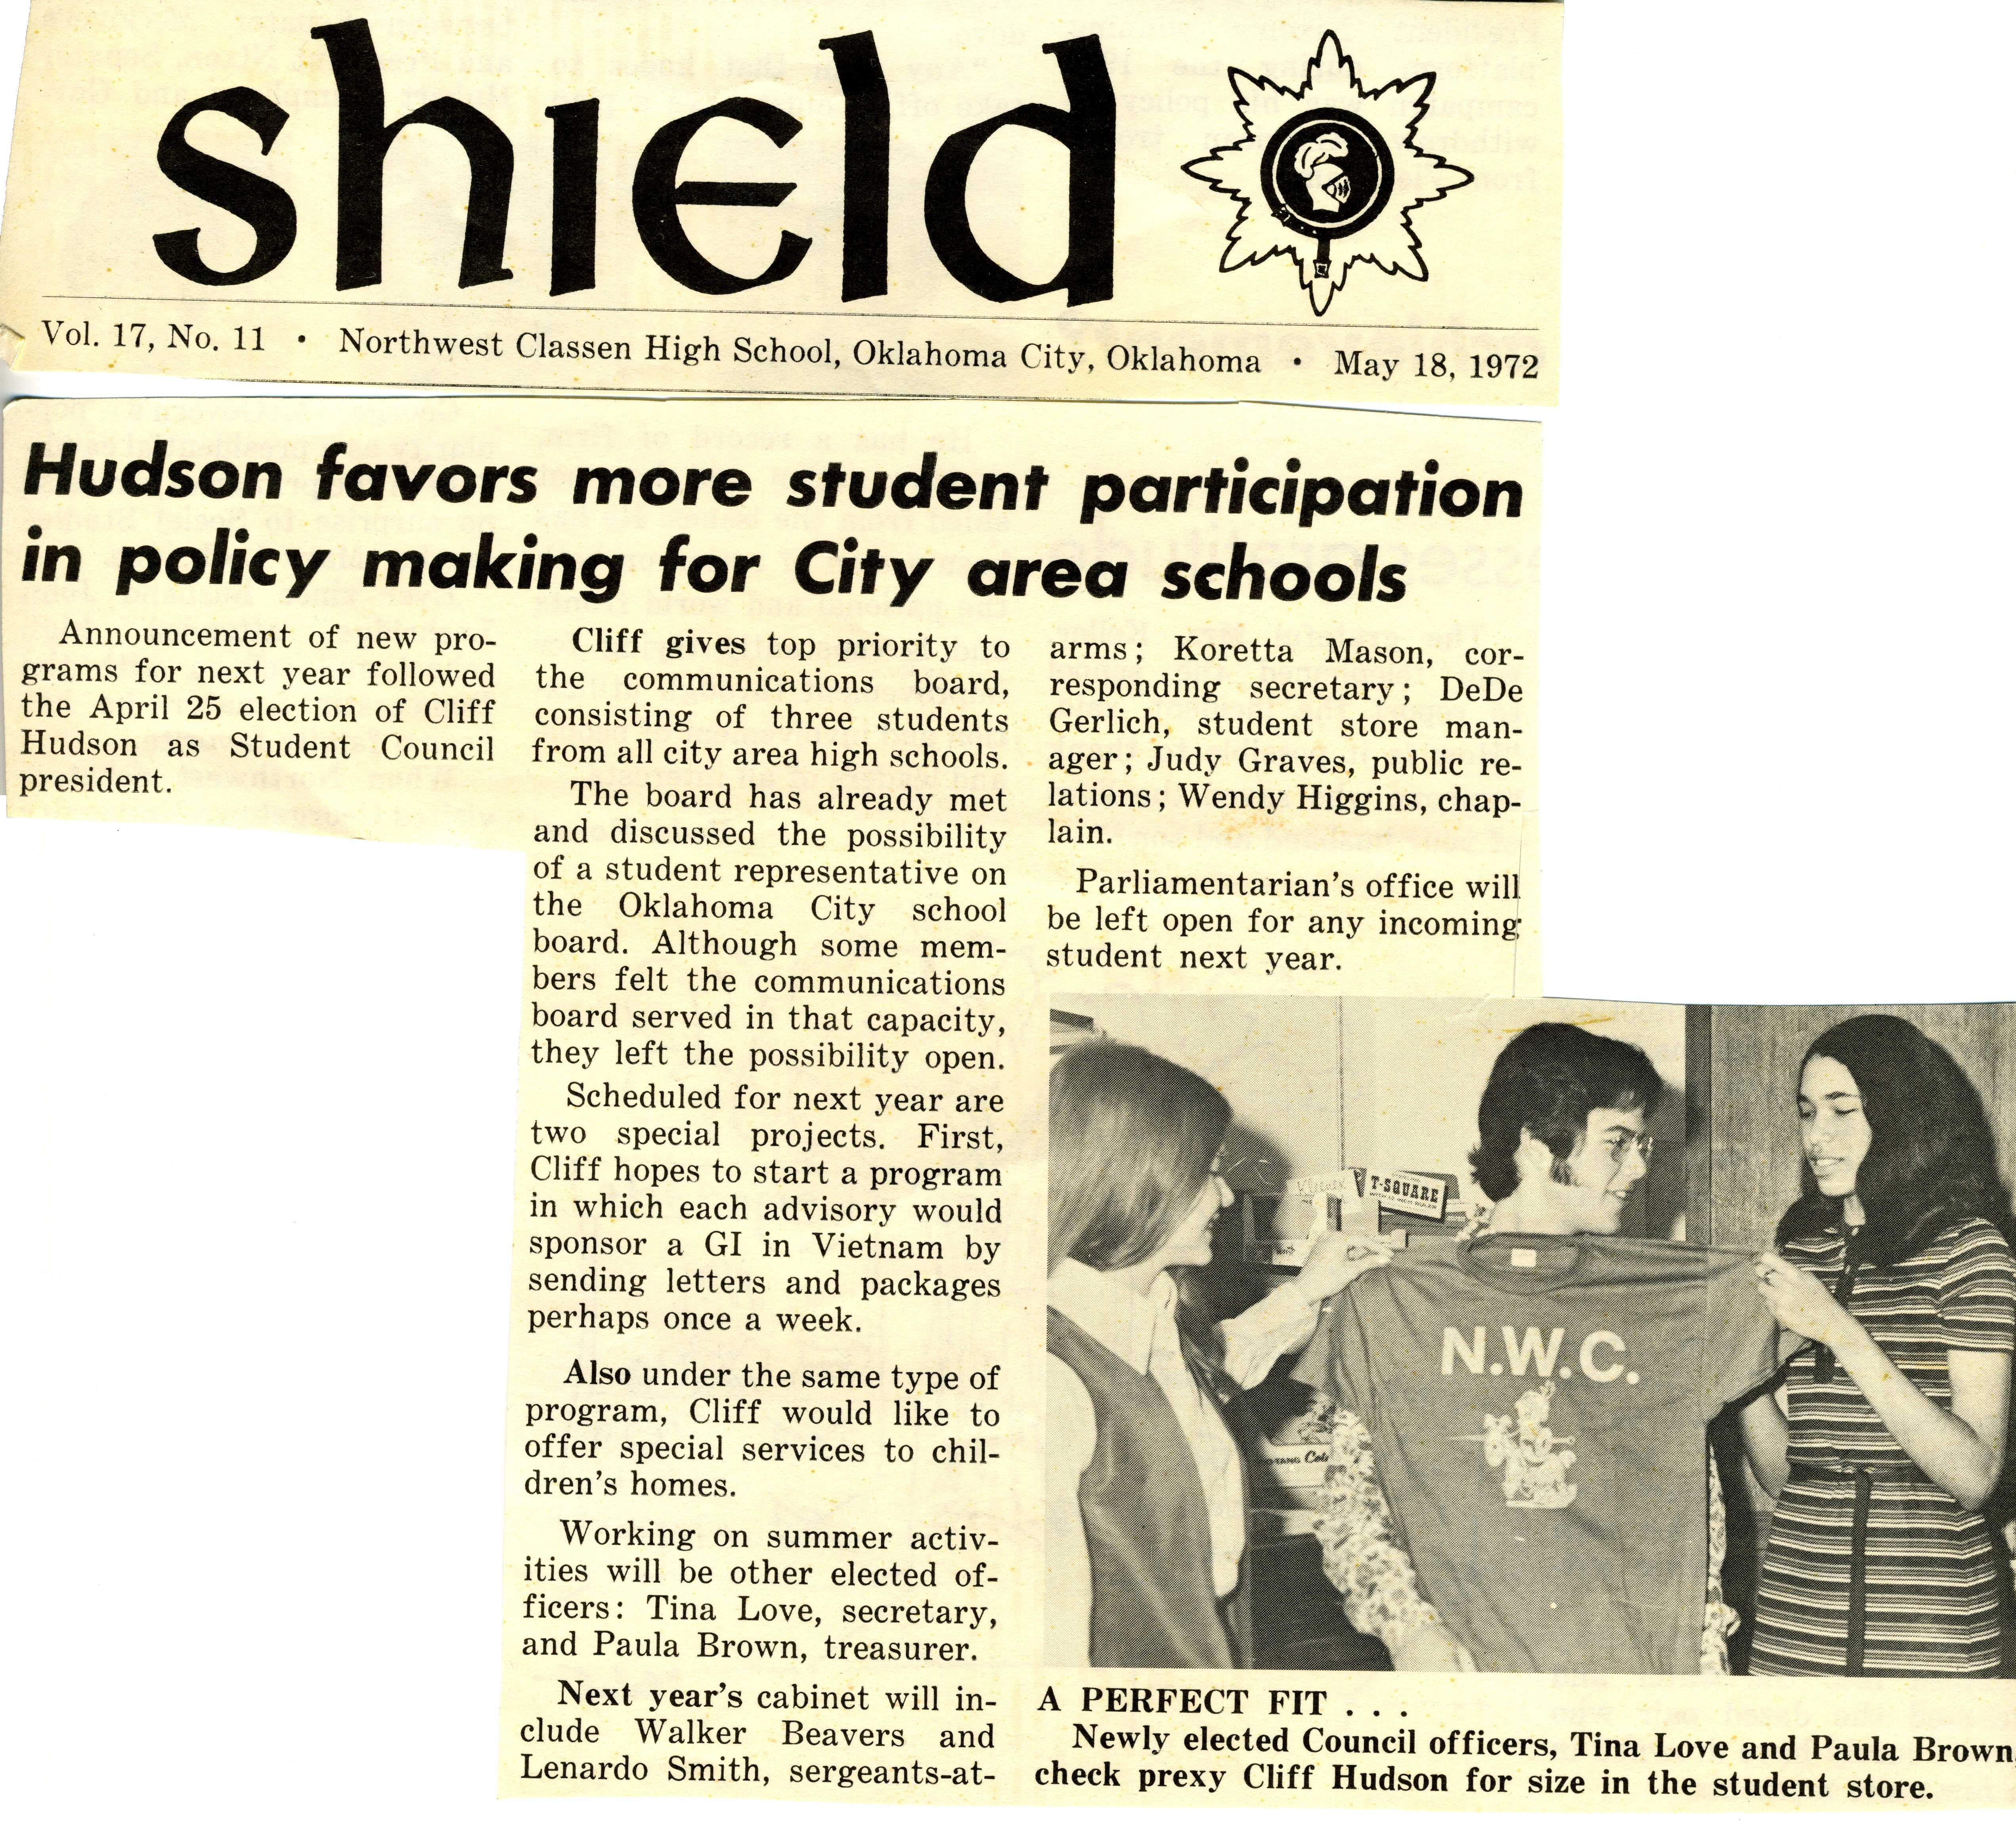 Northwest Classen High School newspaper cutting announcing Clifford Hudson as Student Council president